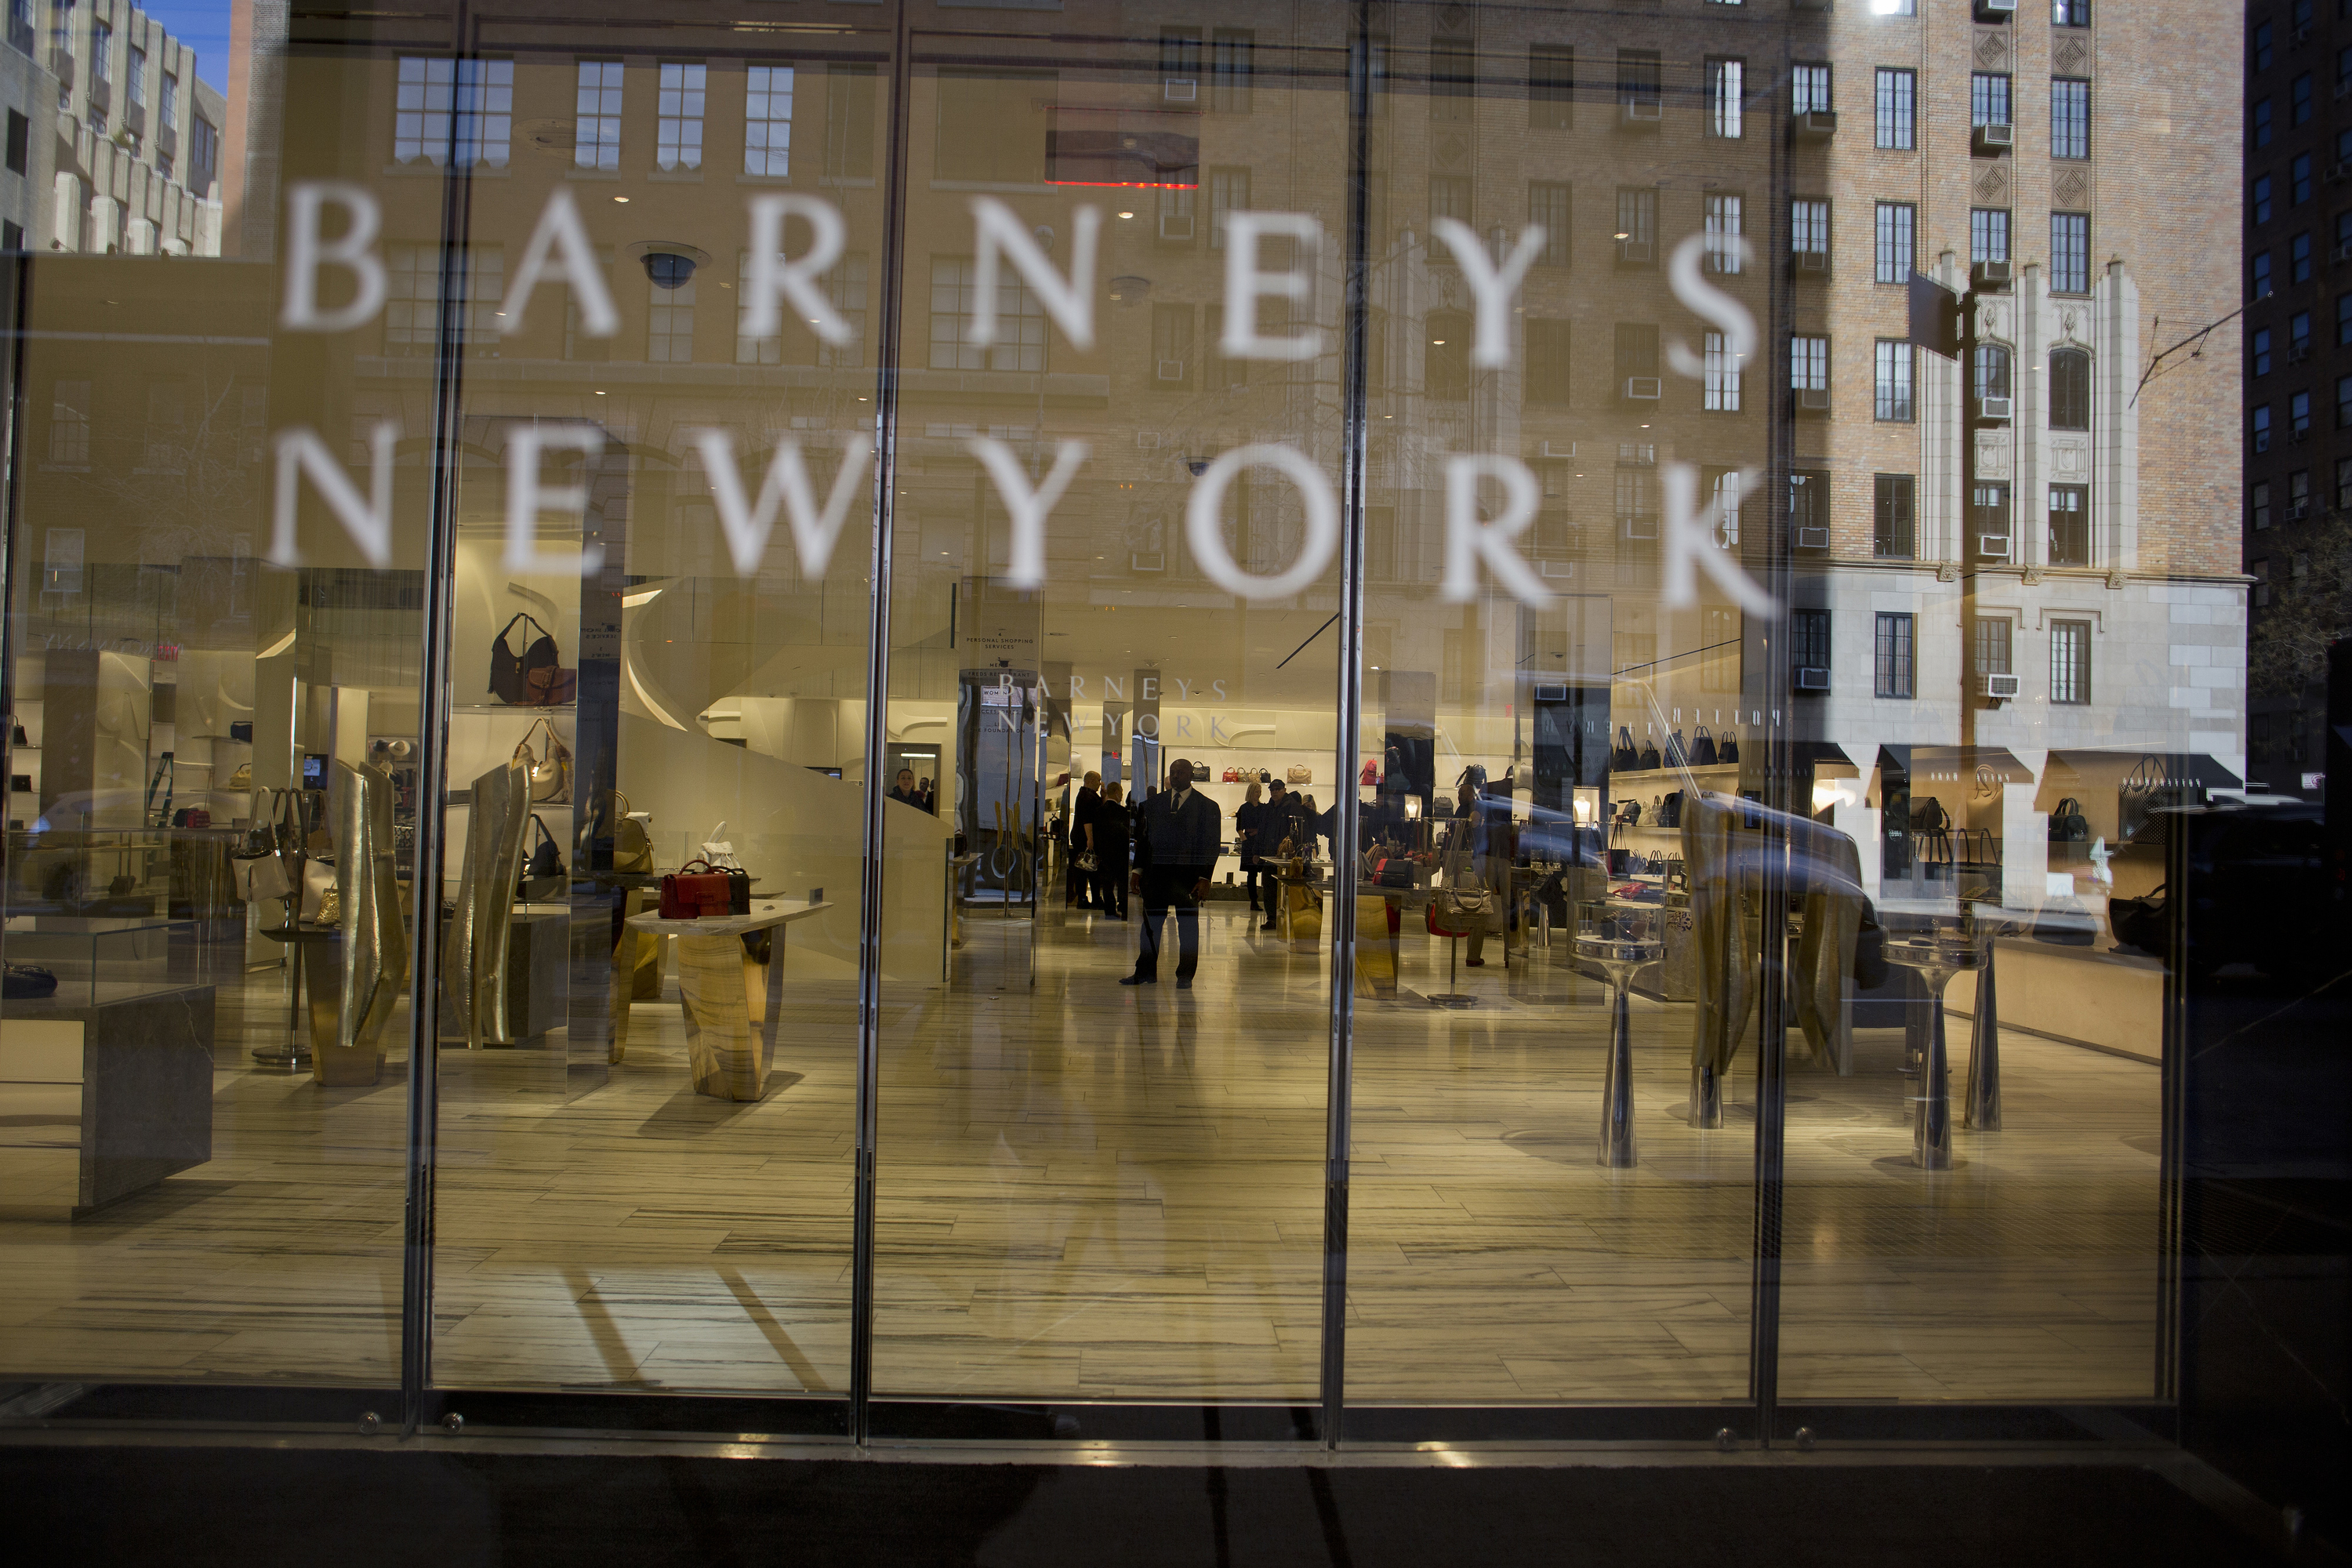 Barneys New York is exploring restructuring and bankruptcy